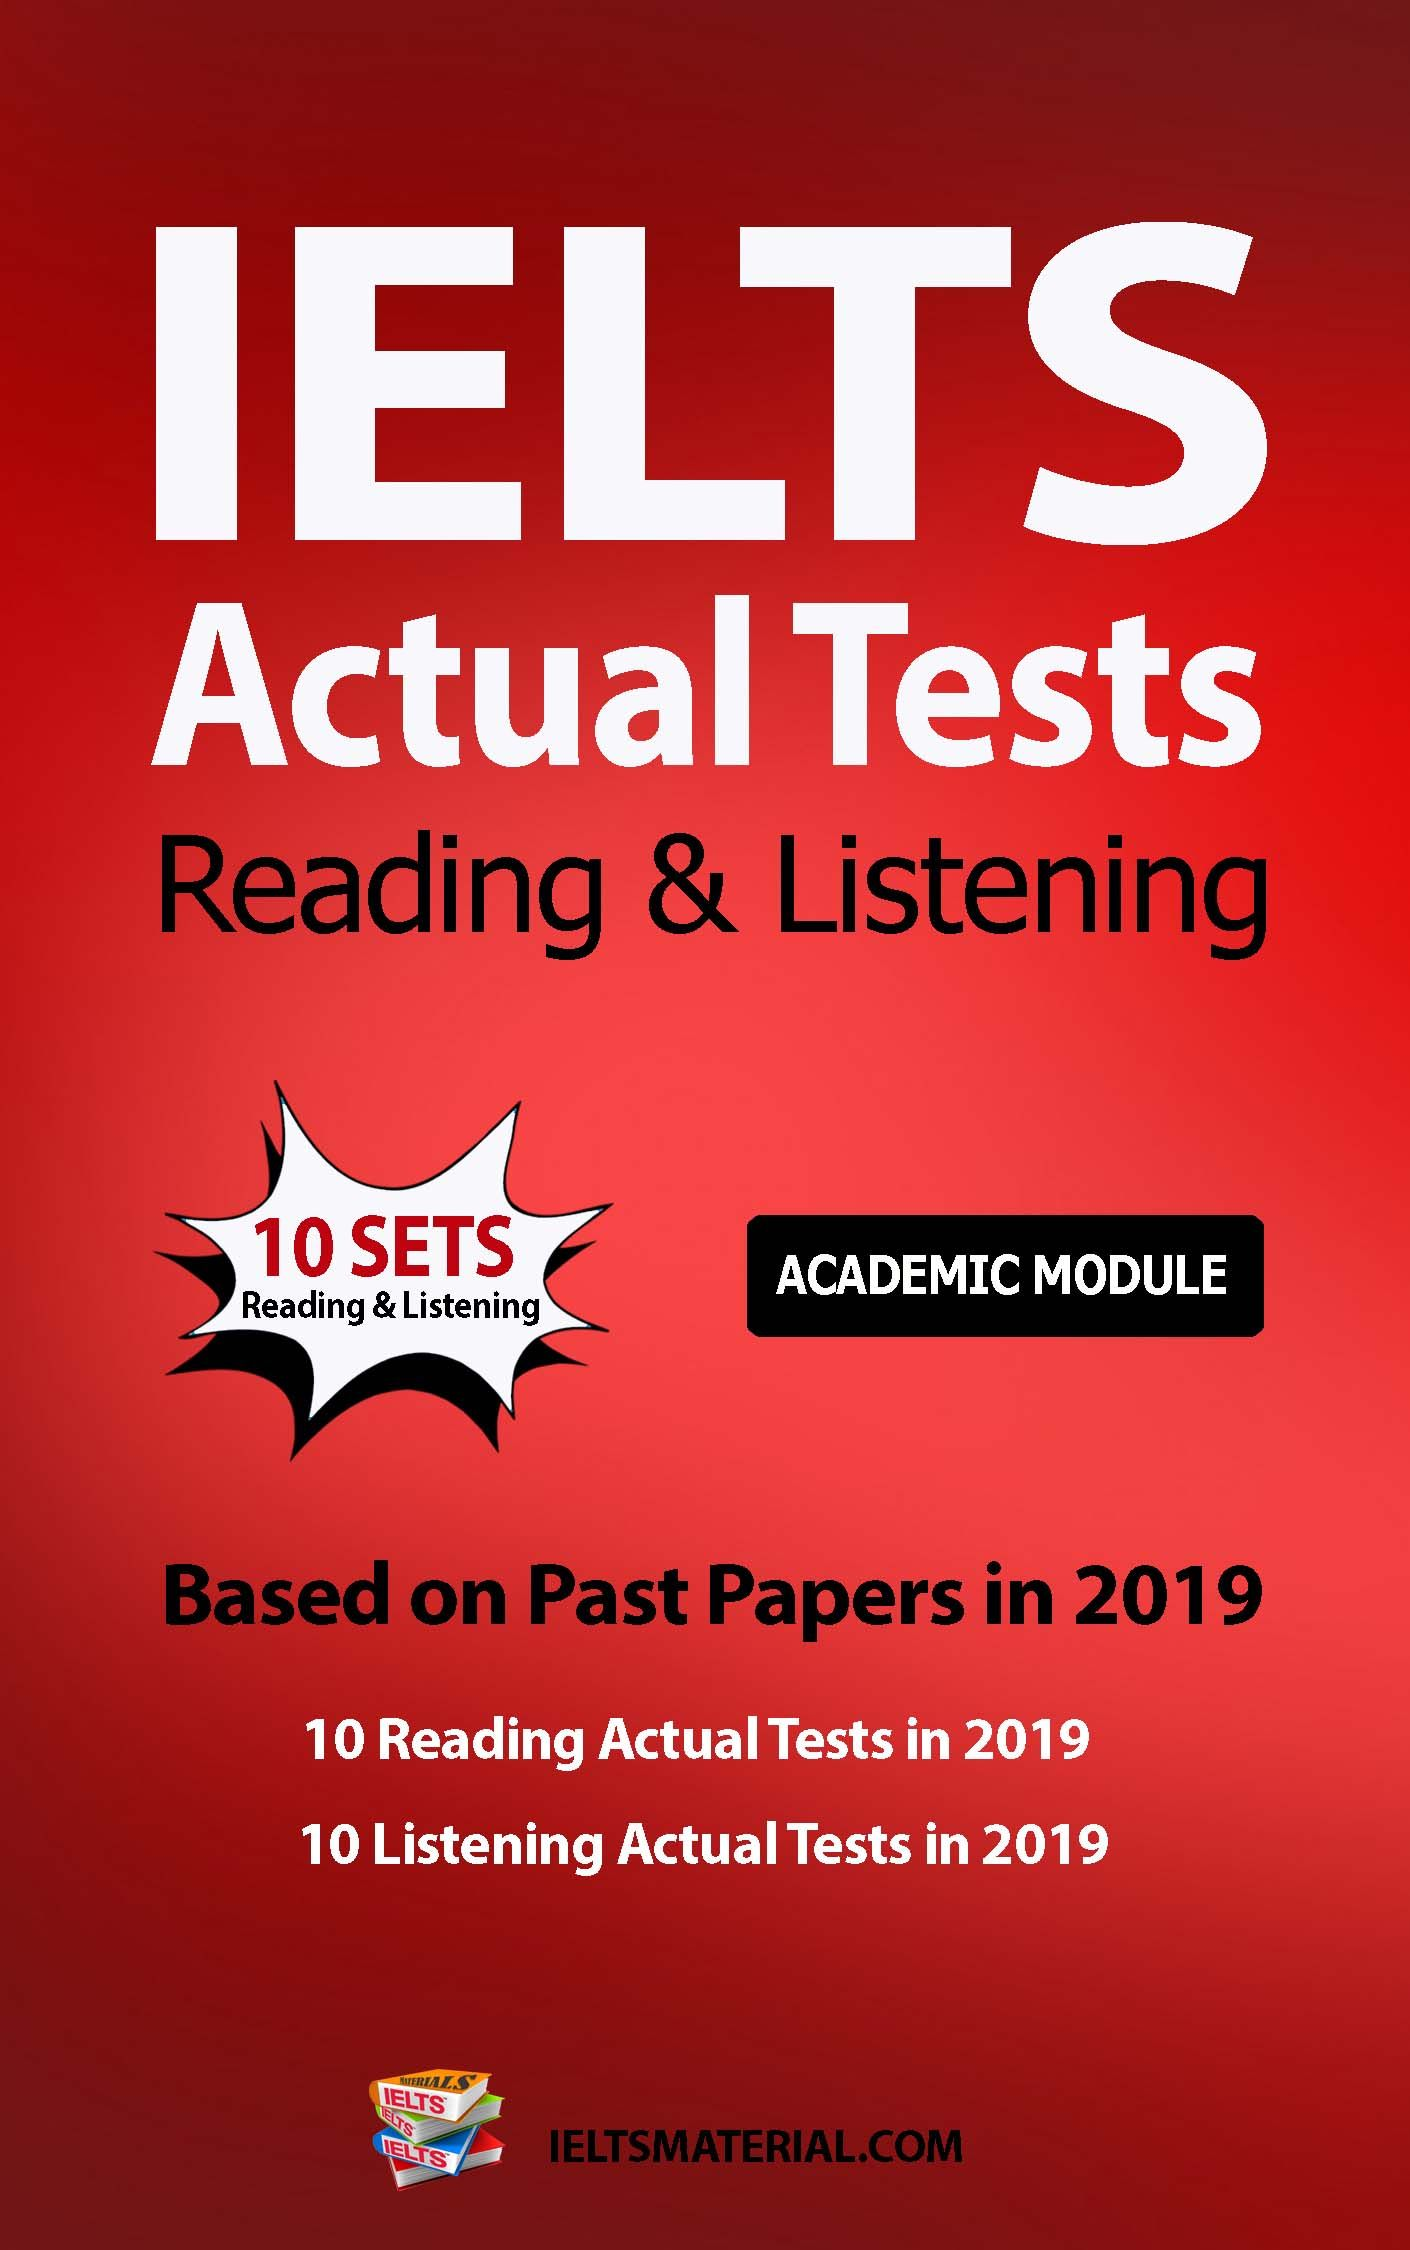 Cambridge Practice Tests for IELTS Series (1 - 13) with Answers & Audio